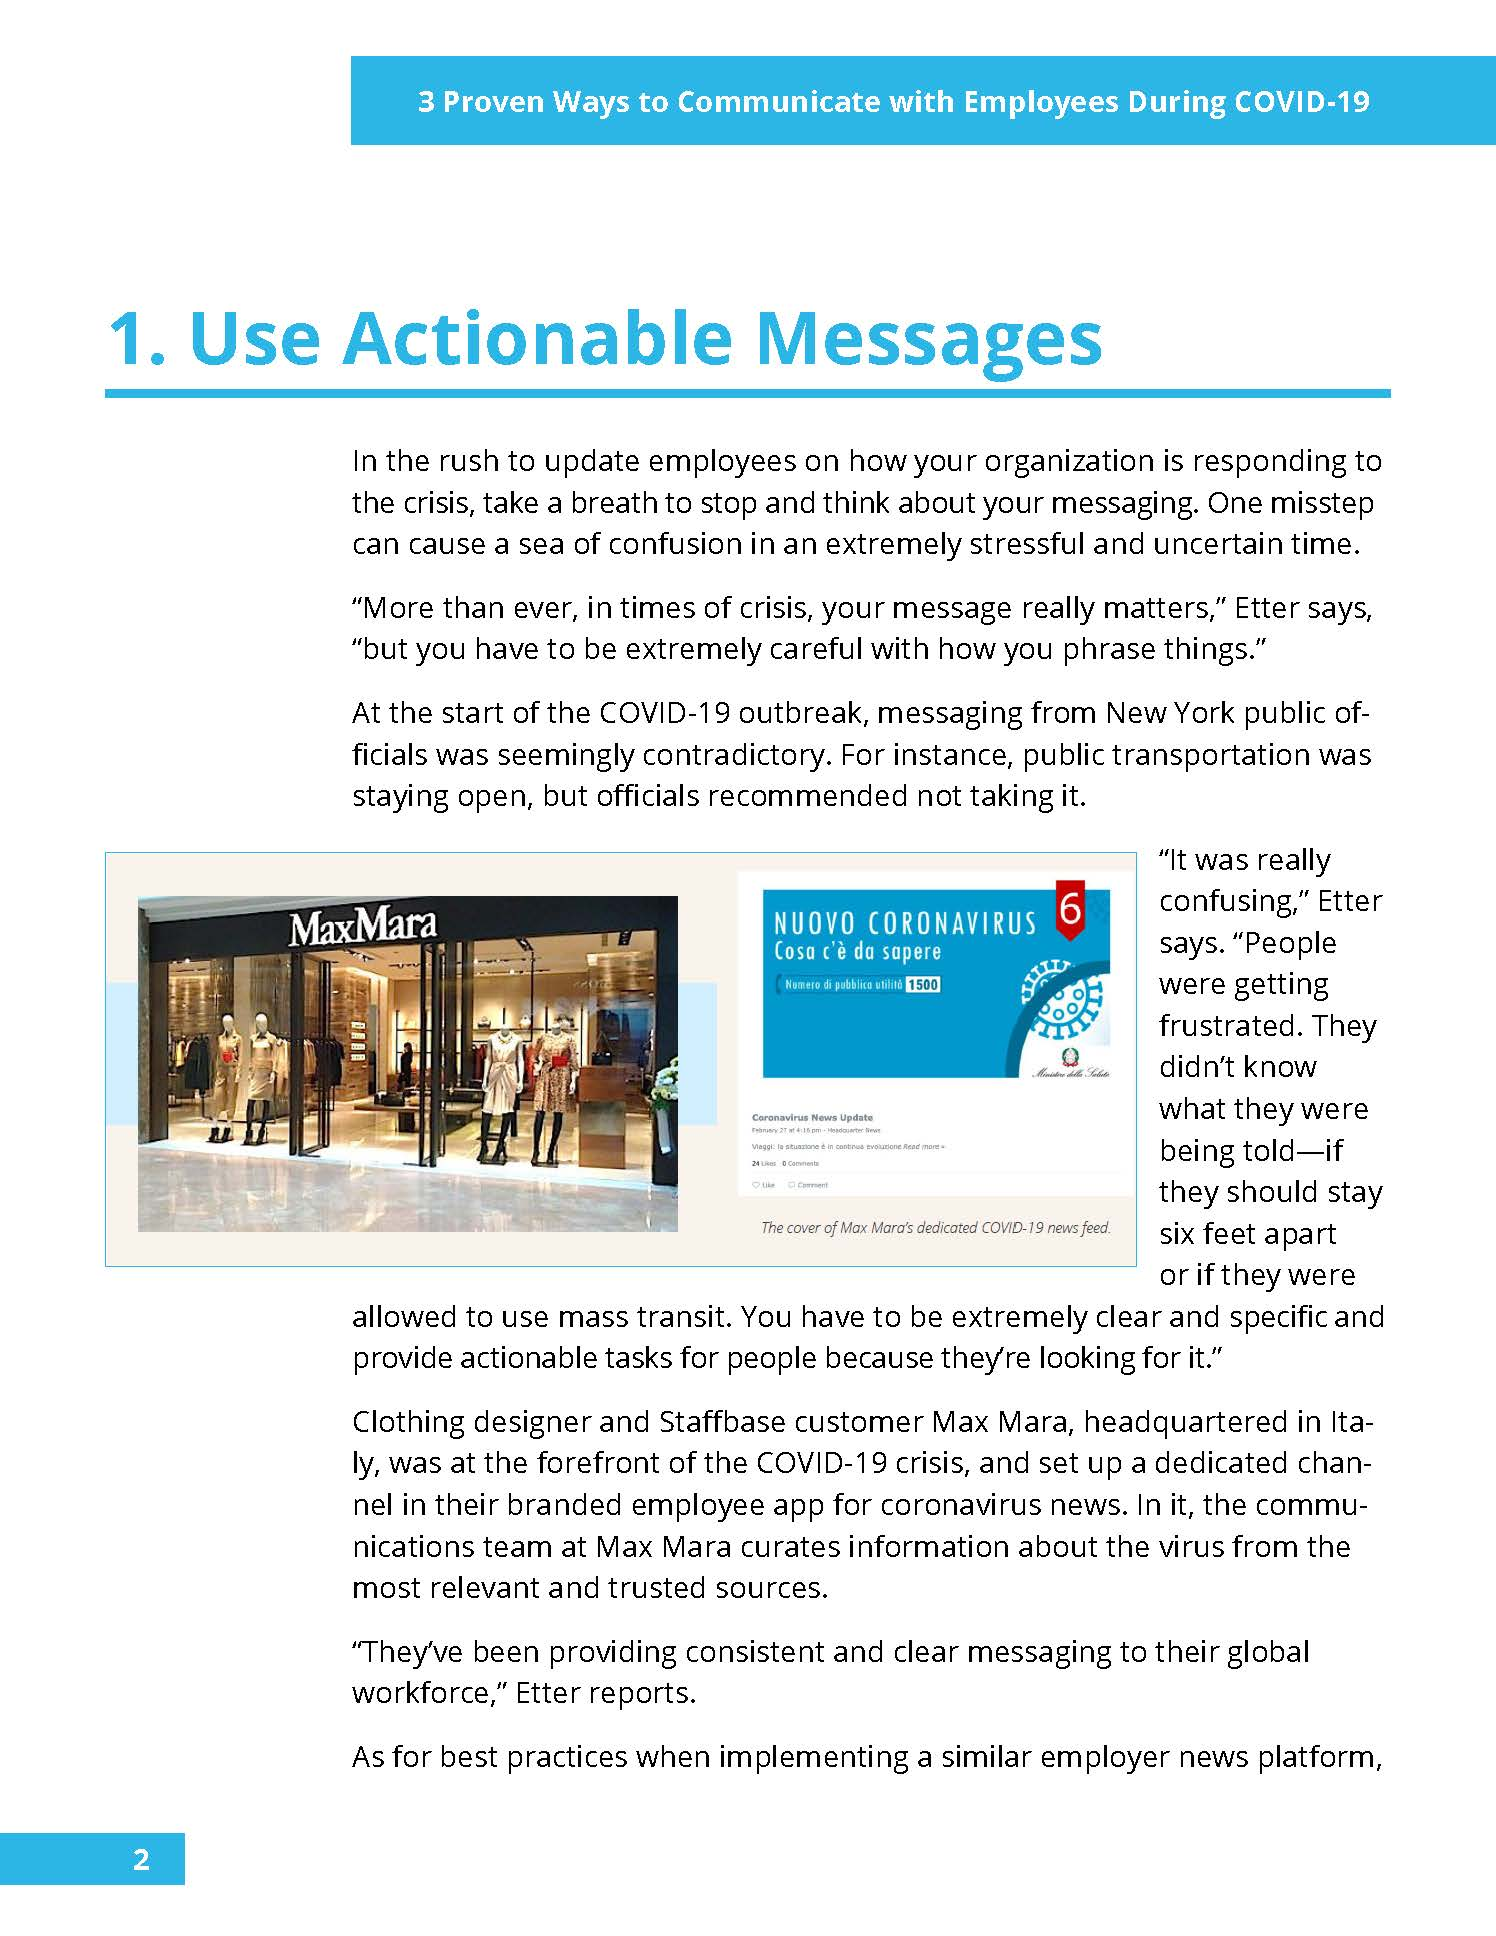 3 Proven Ways to Communicate with Employees During COVID-19 page 3